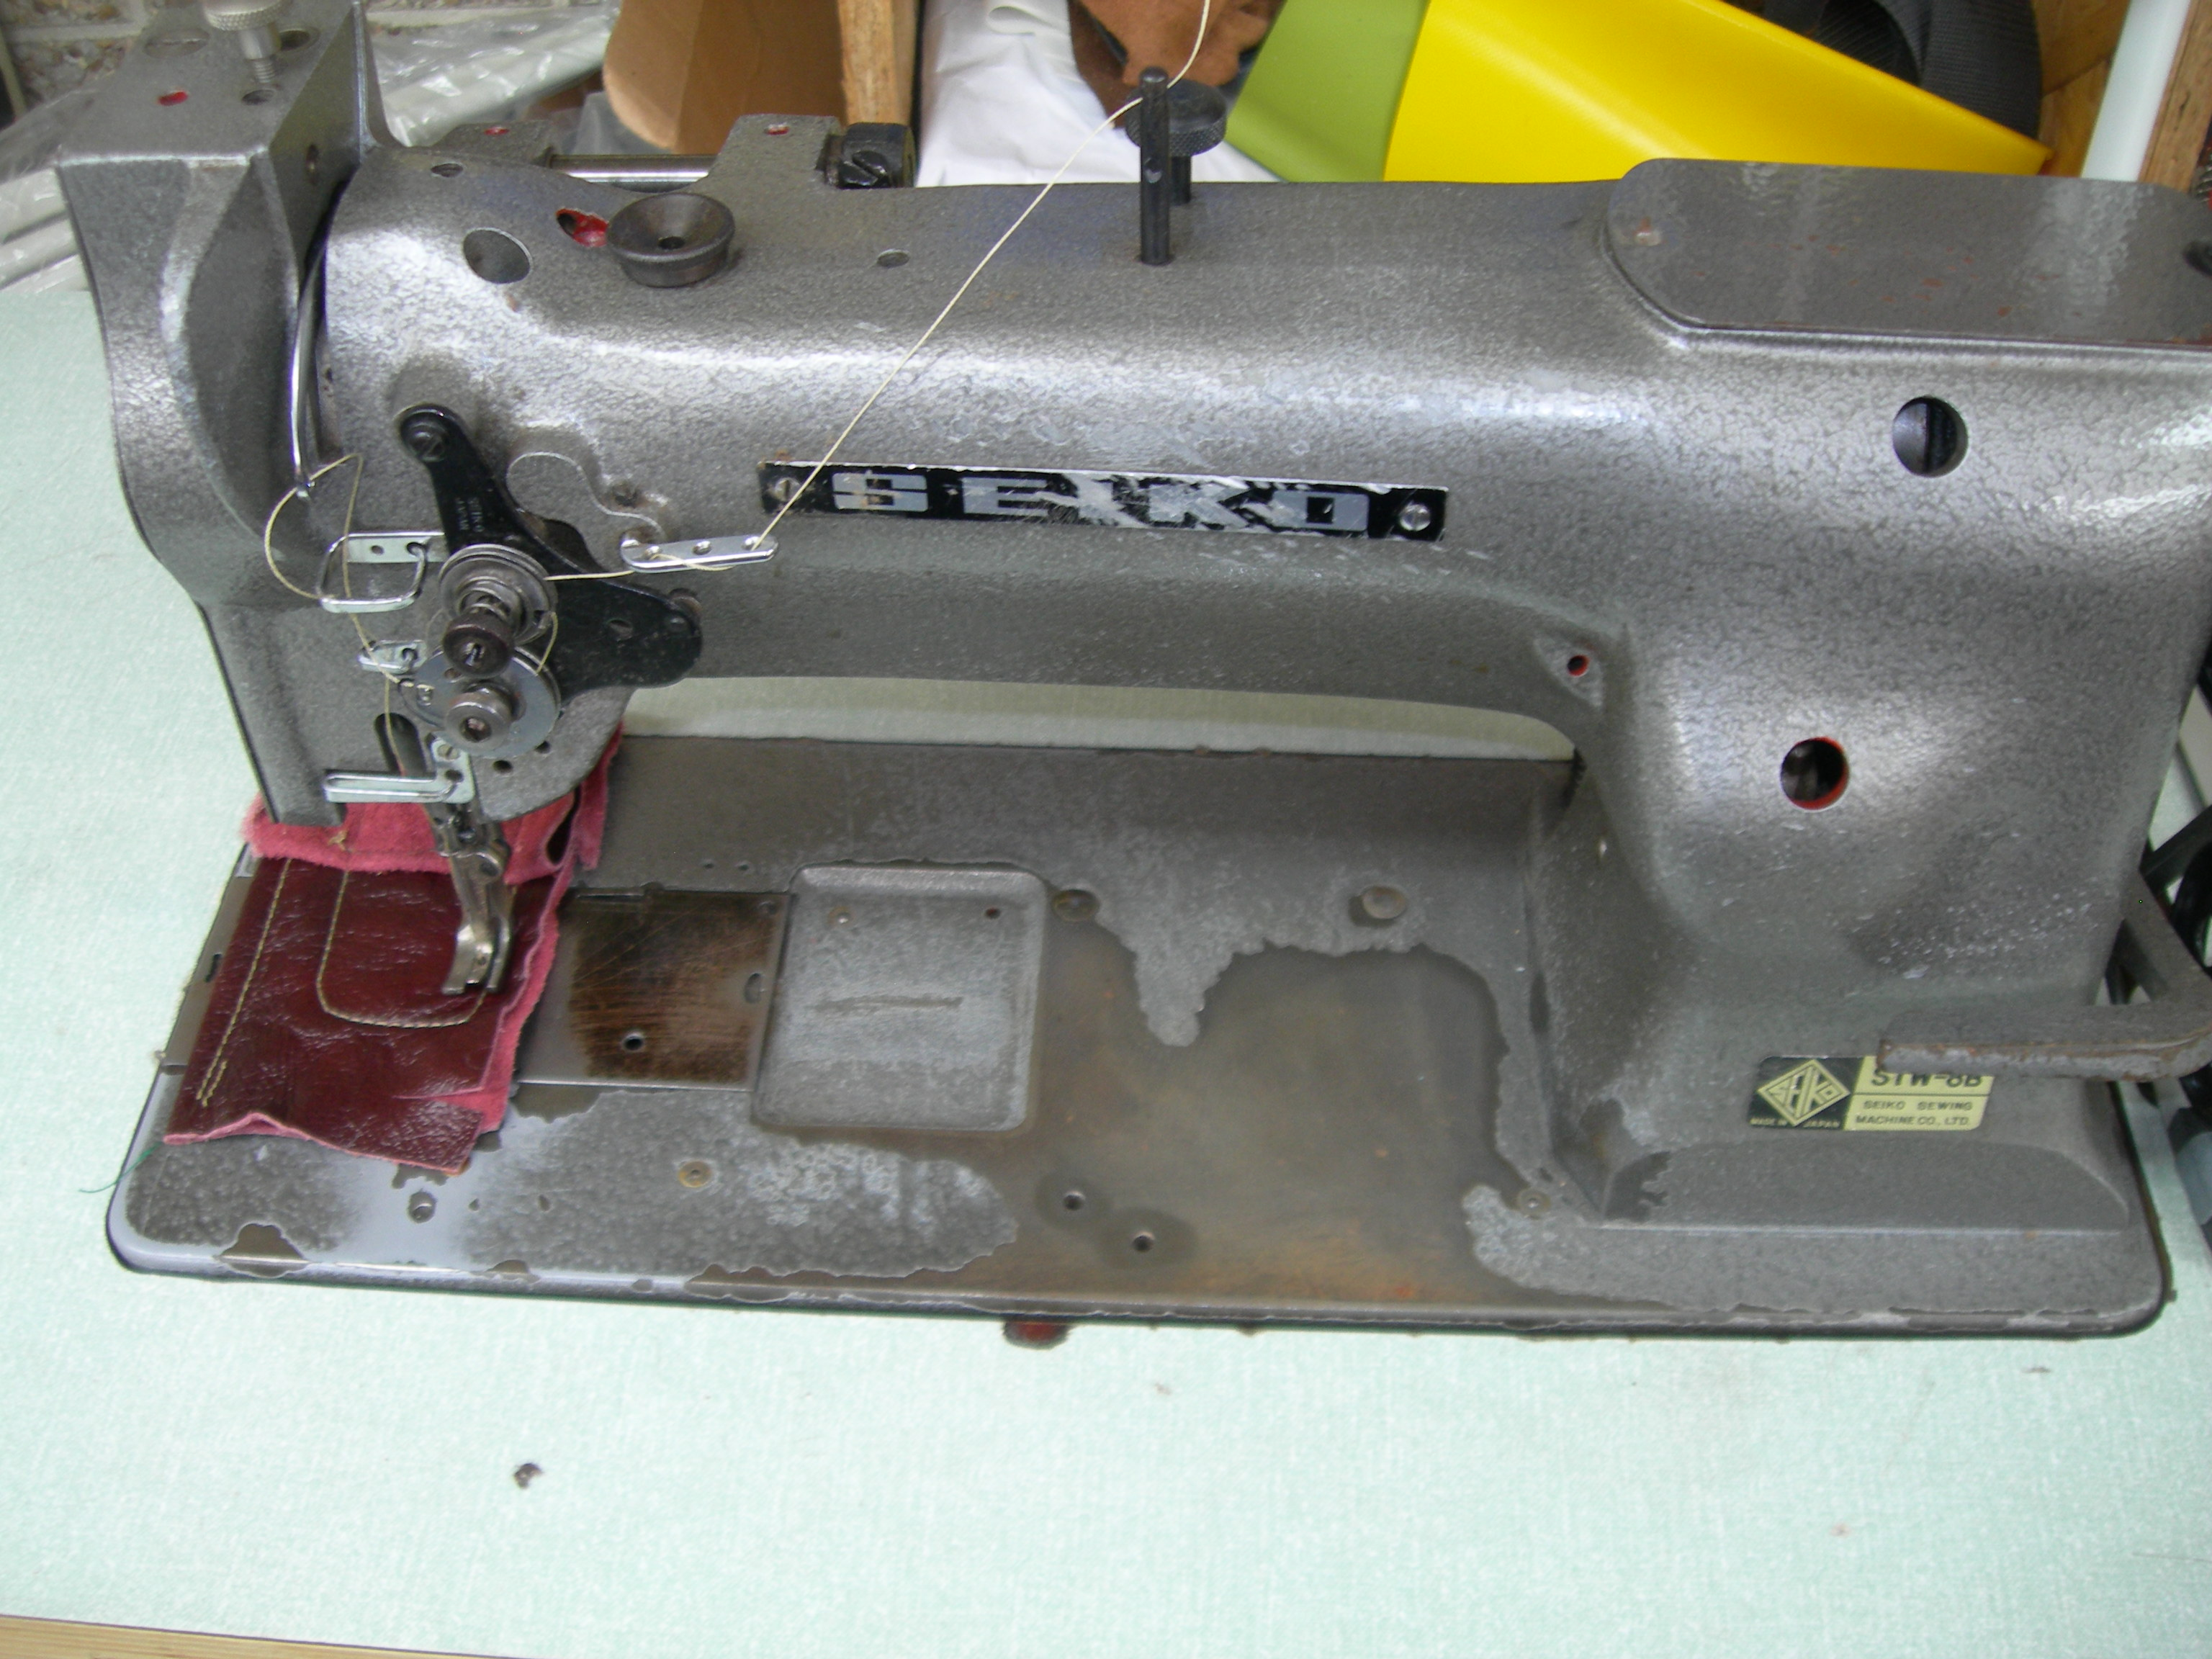 seiko industrial sewing machine for sale